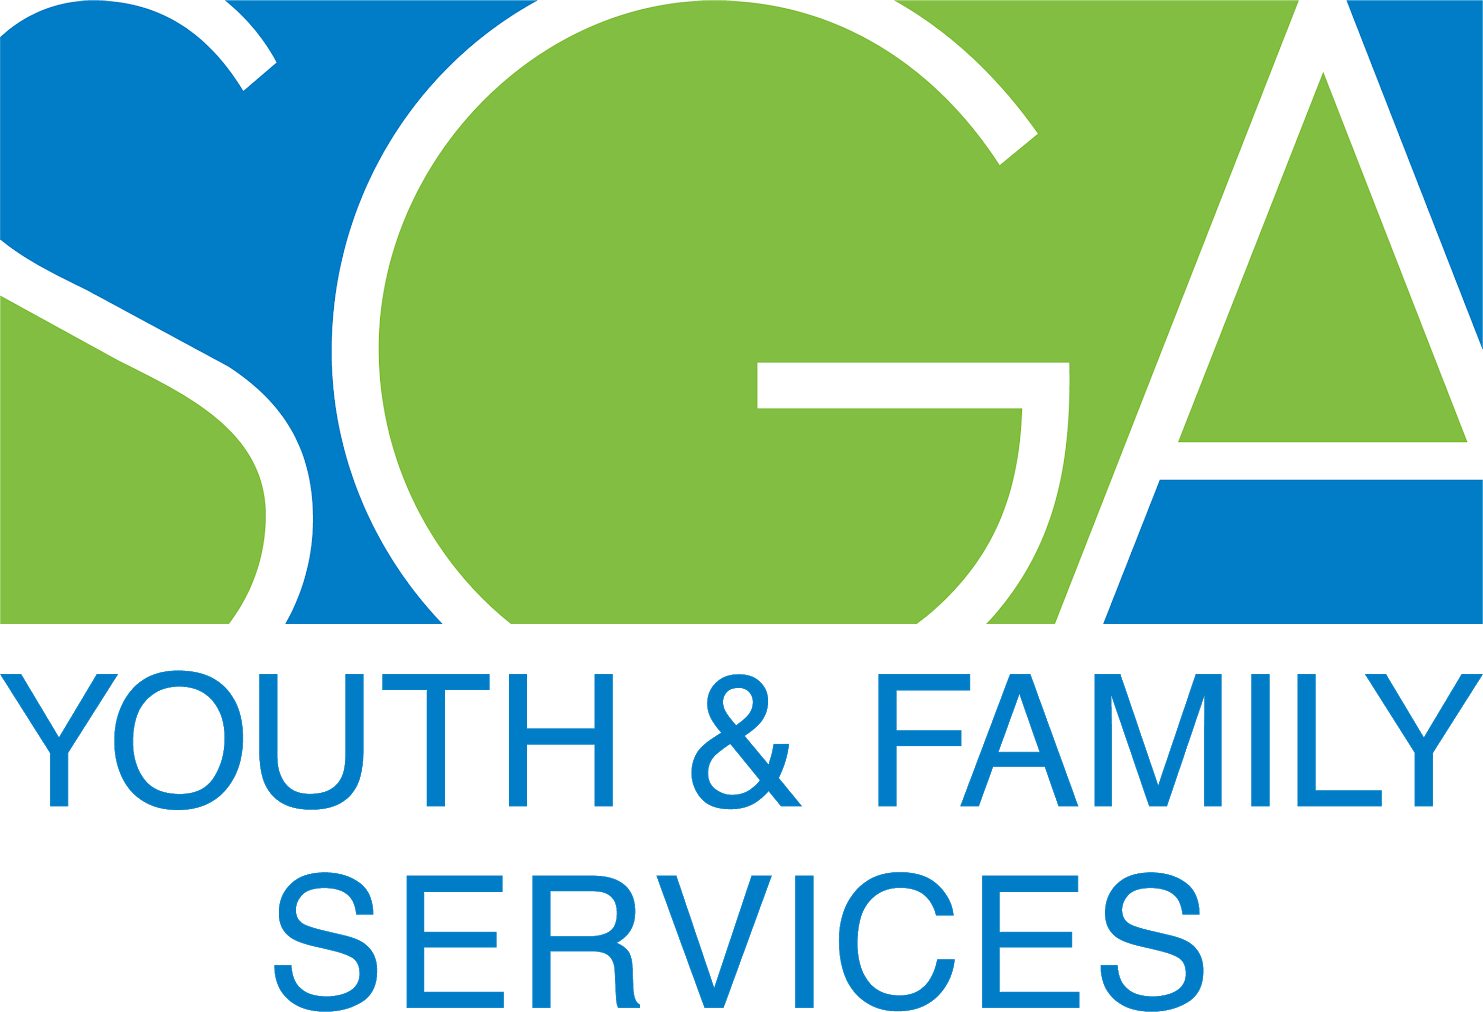 http://https://www.sga-youth.org